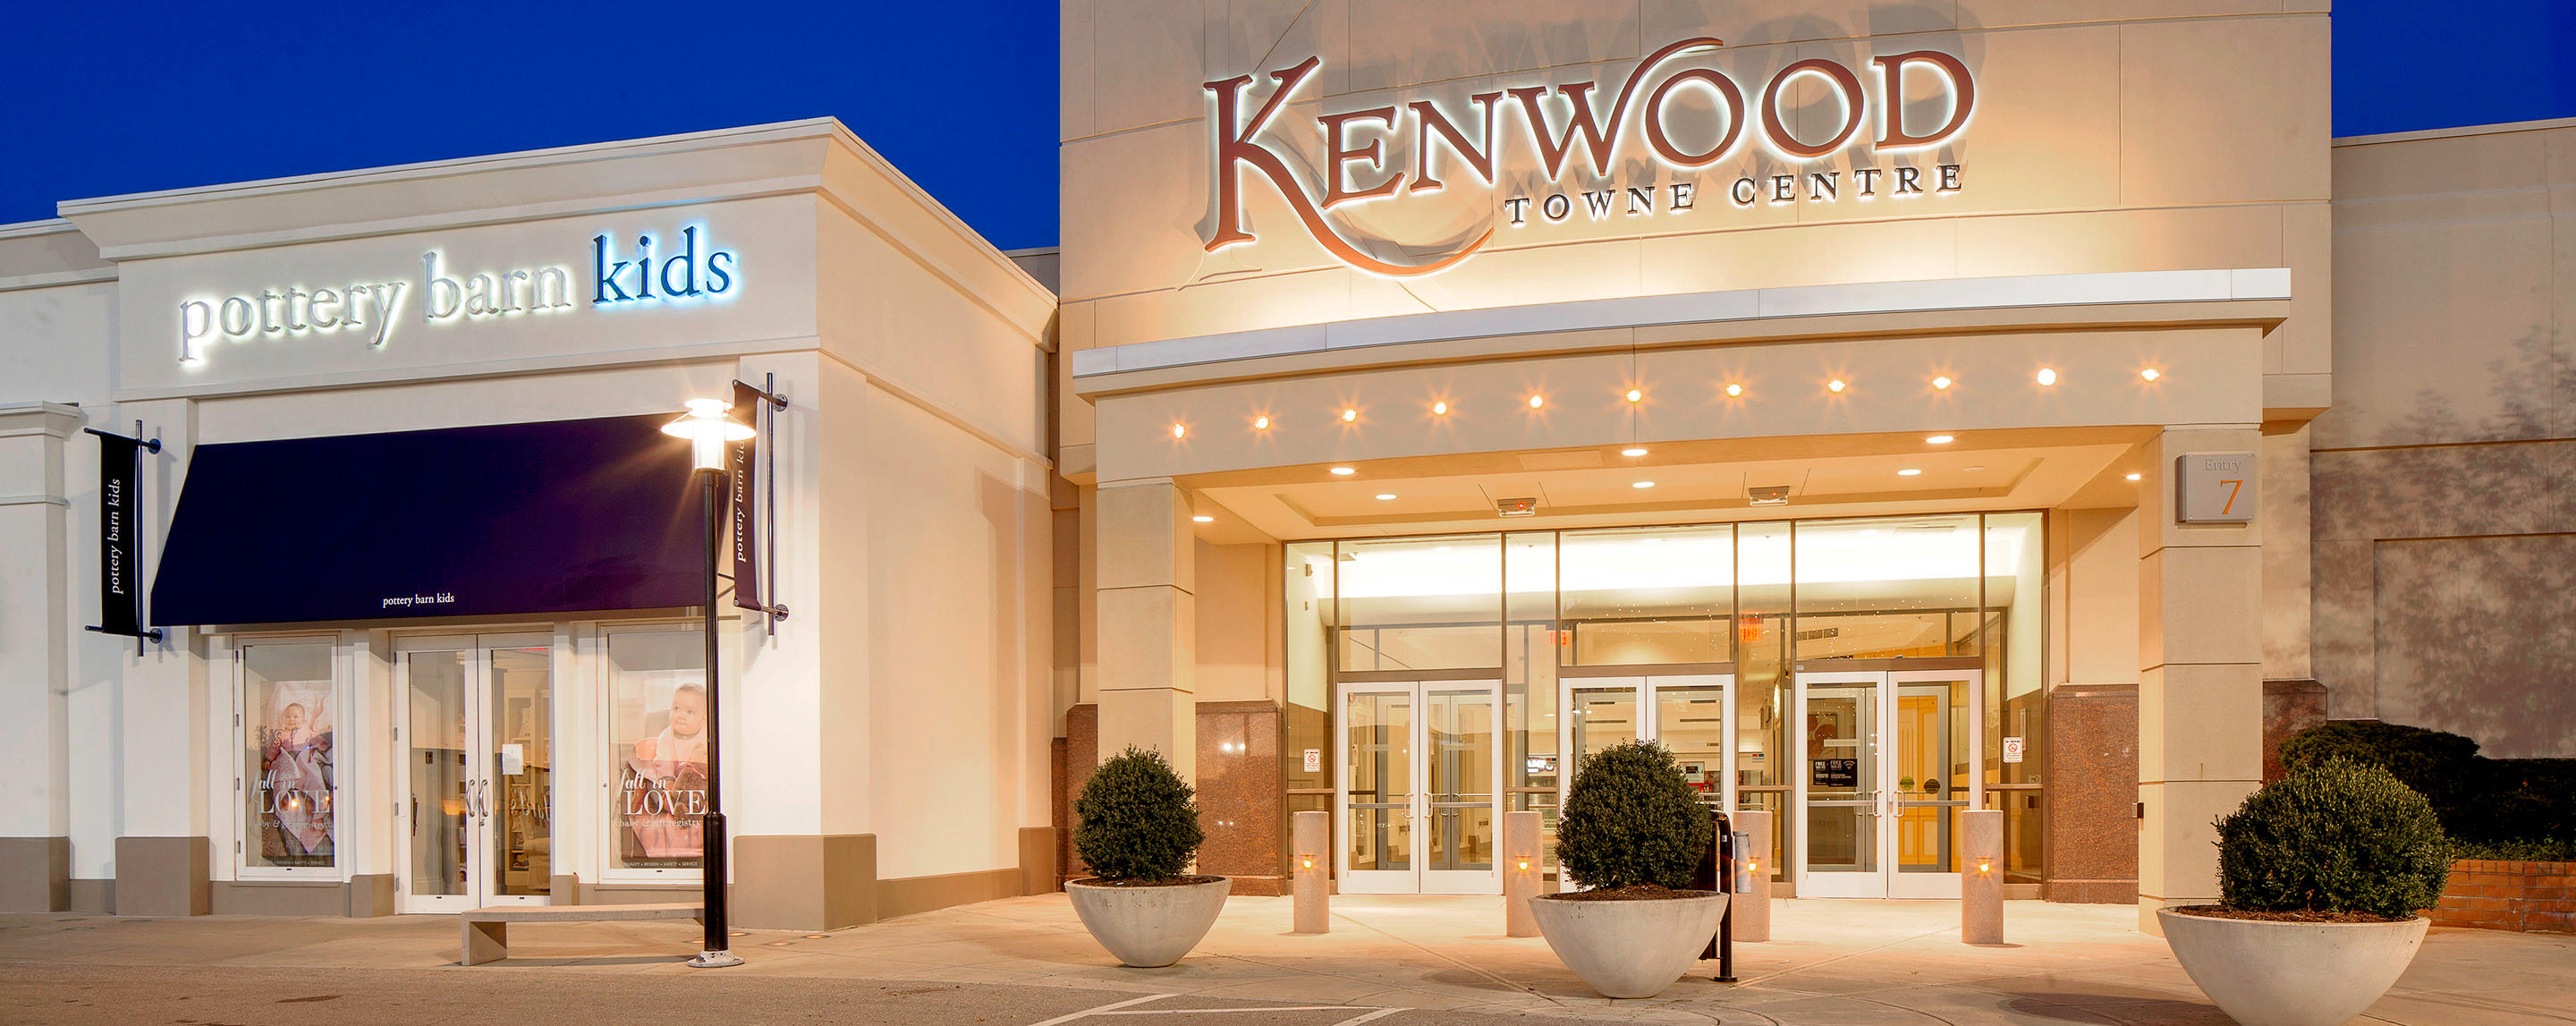 Oct 08, · Kenwood Towne Centre is the busiest and largest mall in Cincinnati. Now it's true that by square footage Forest Fair (or whatever it's called now) is /5().